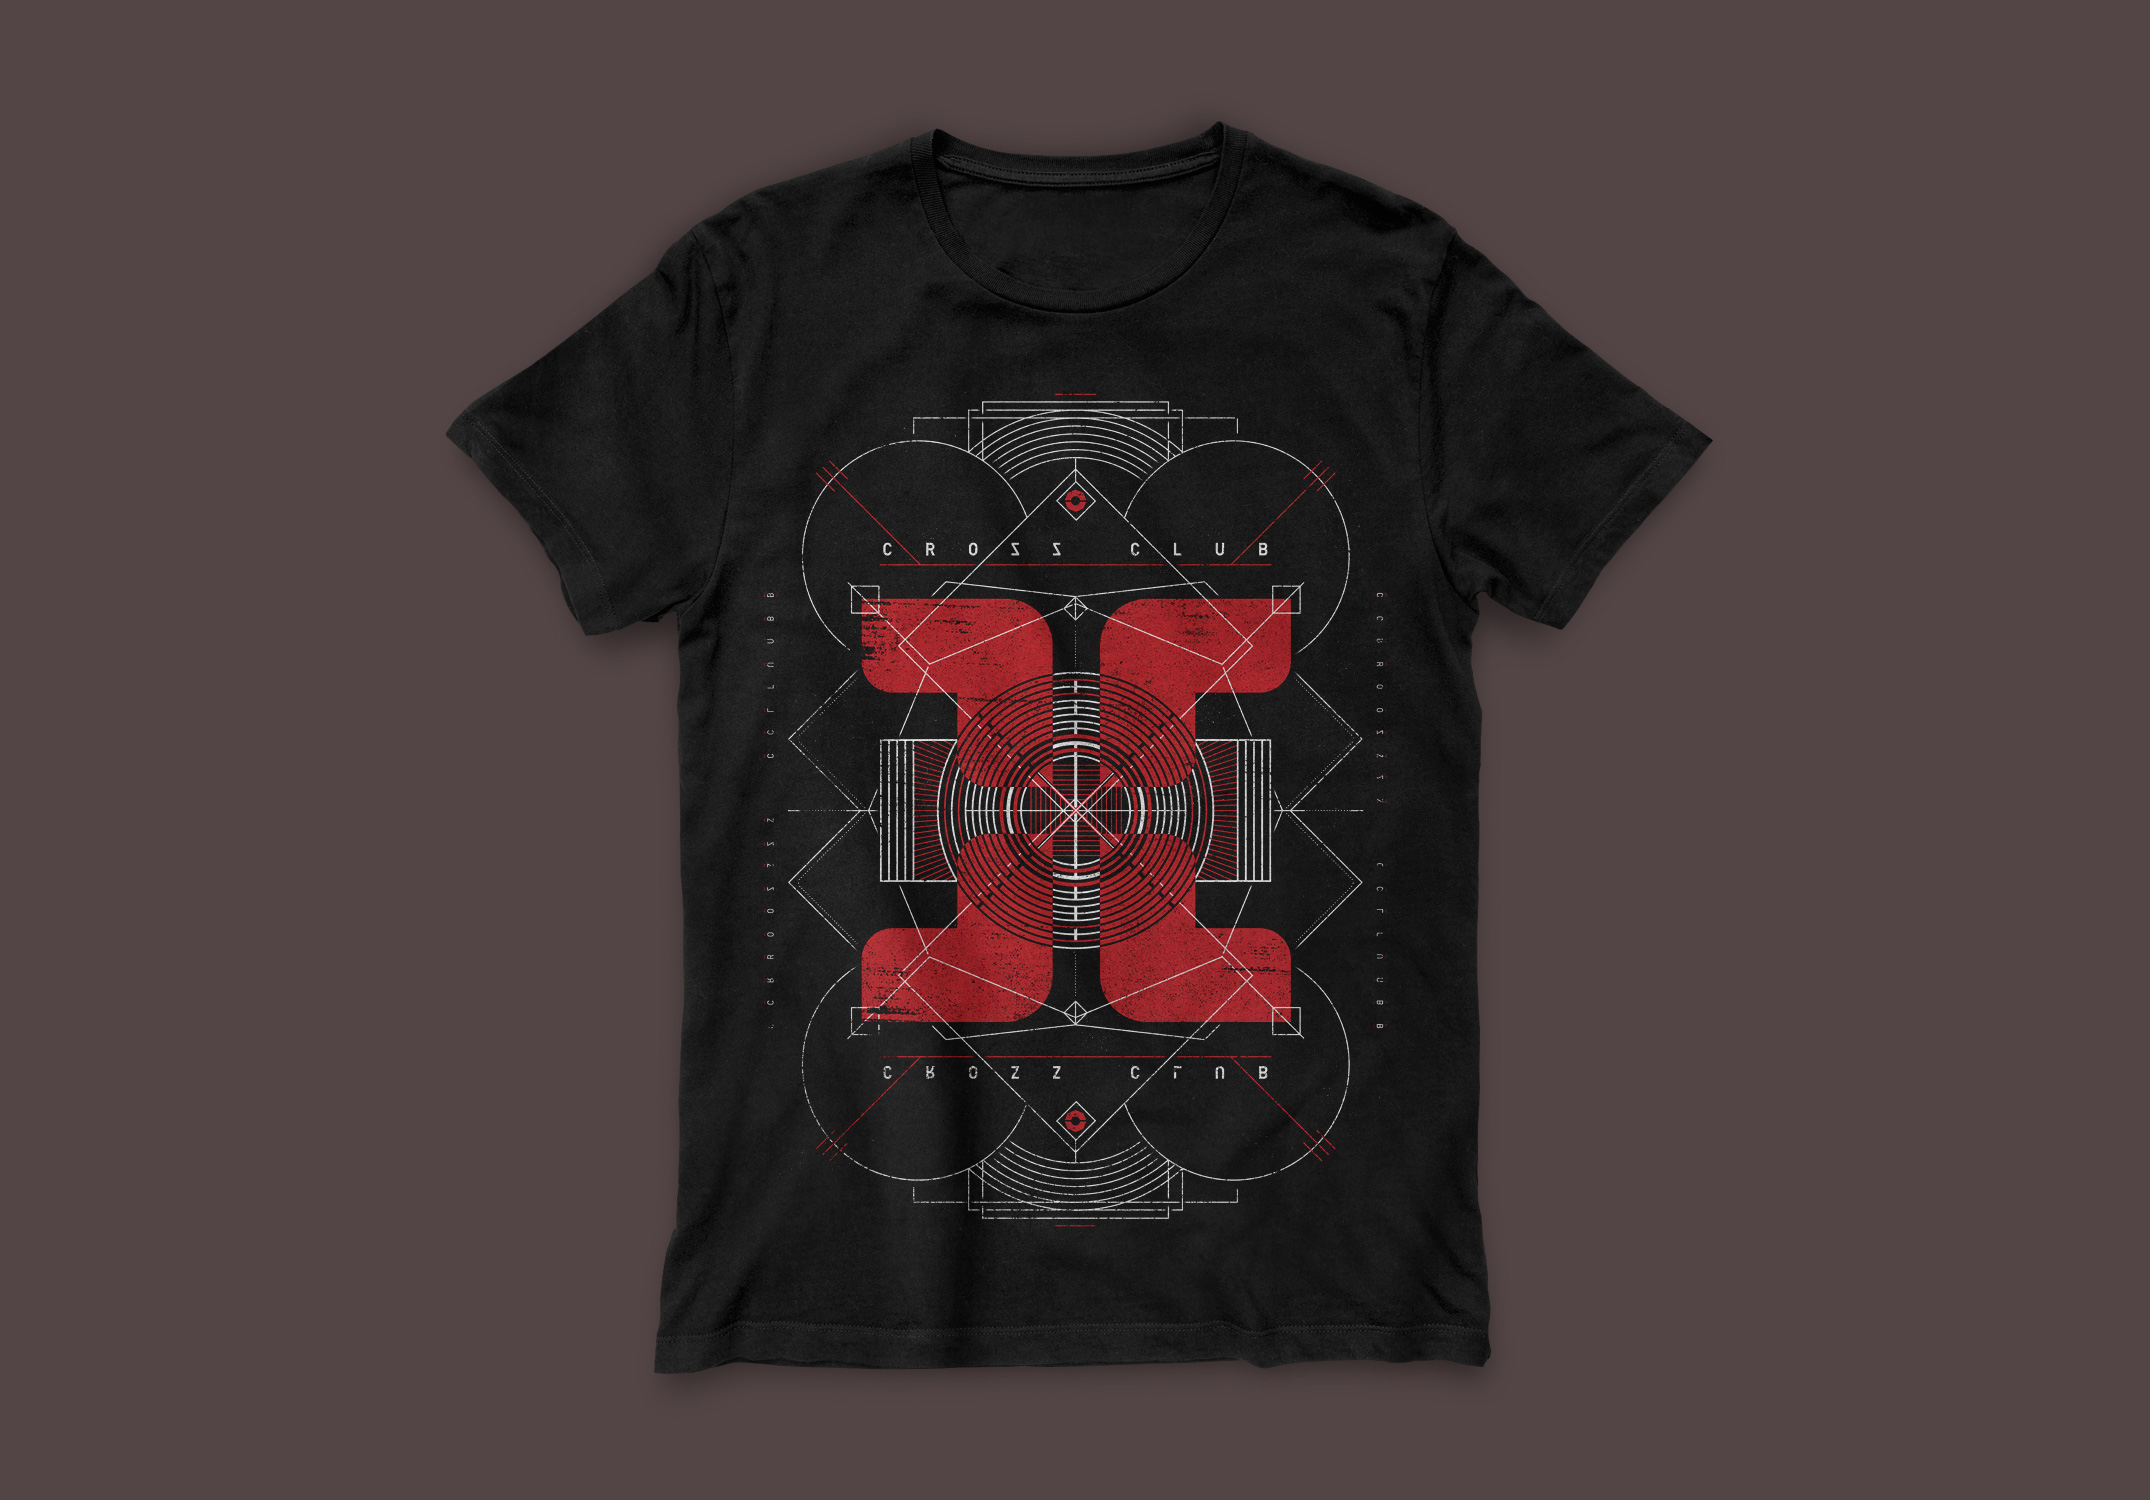 cross club t-shirt design